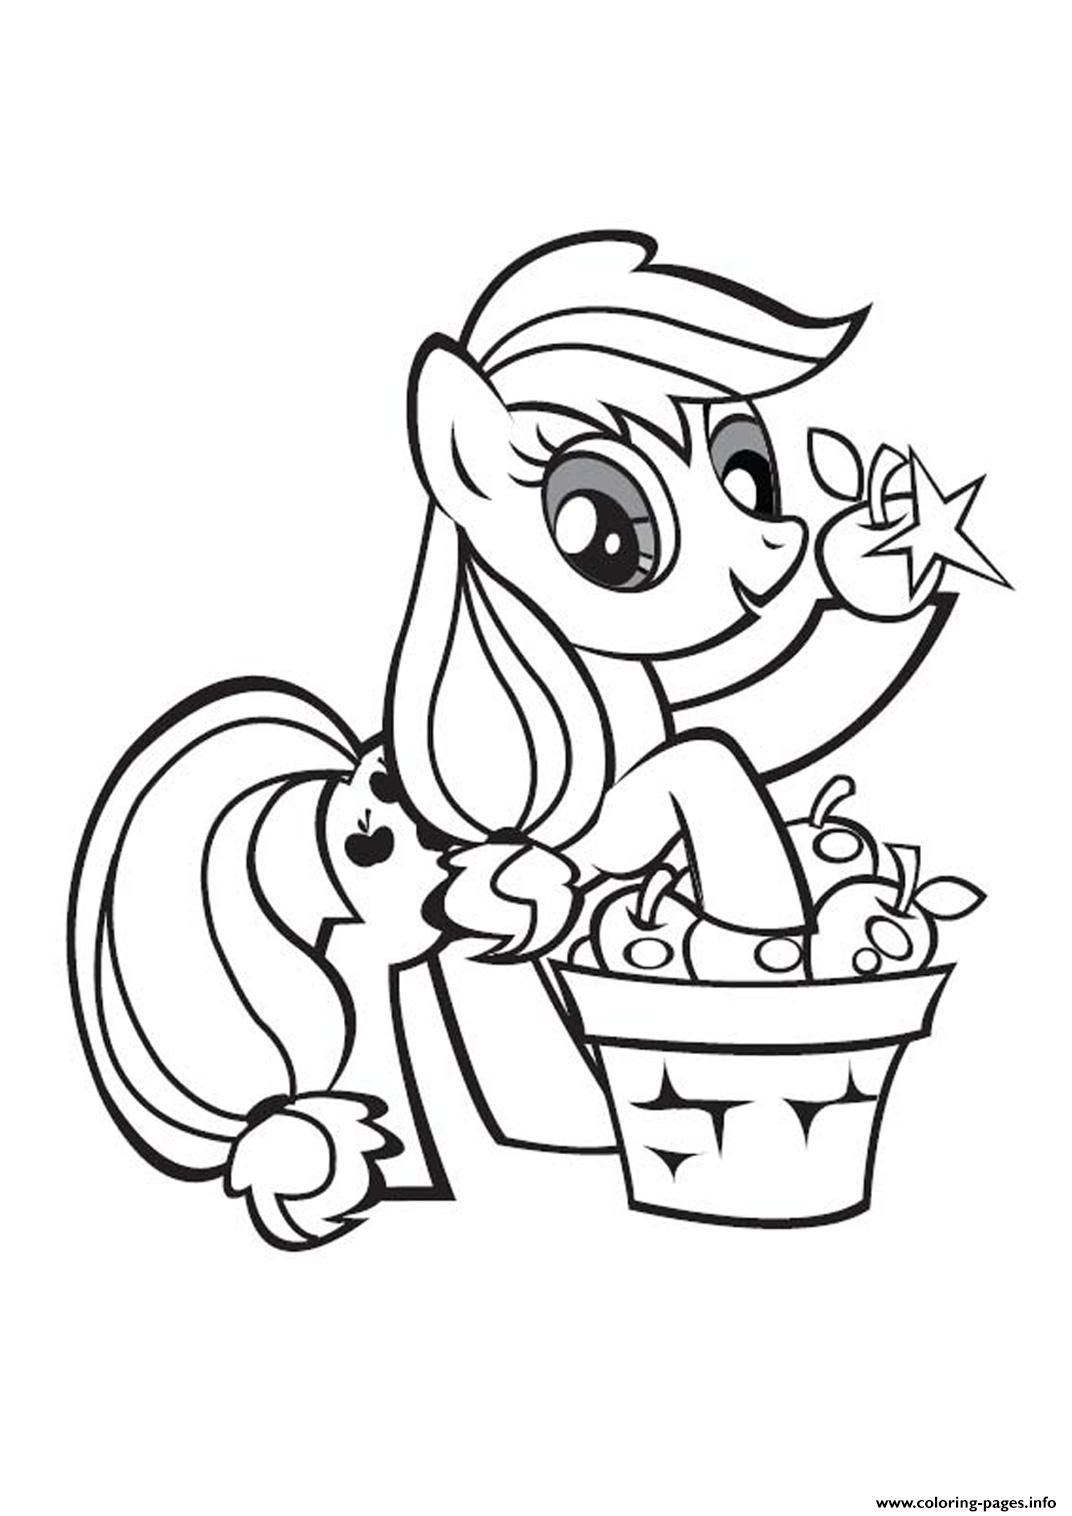 Print my little pony applejack